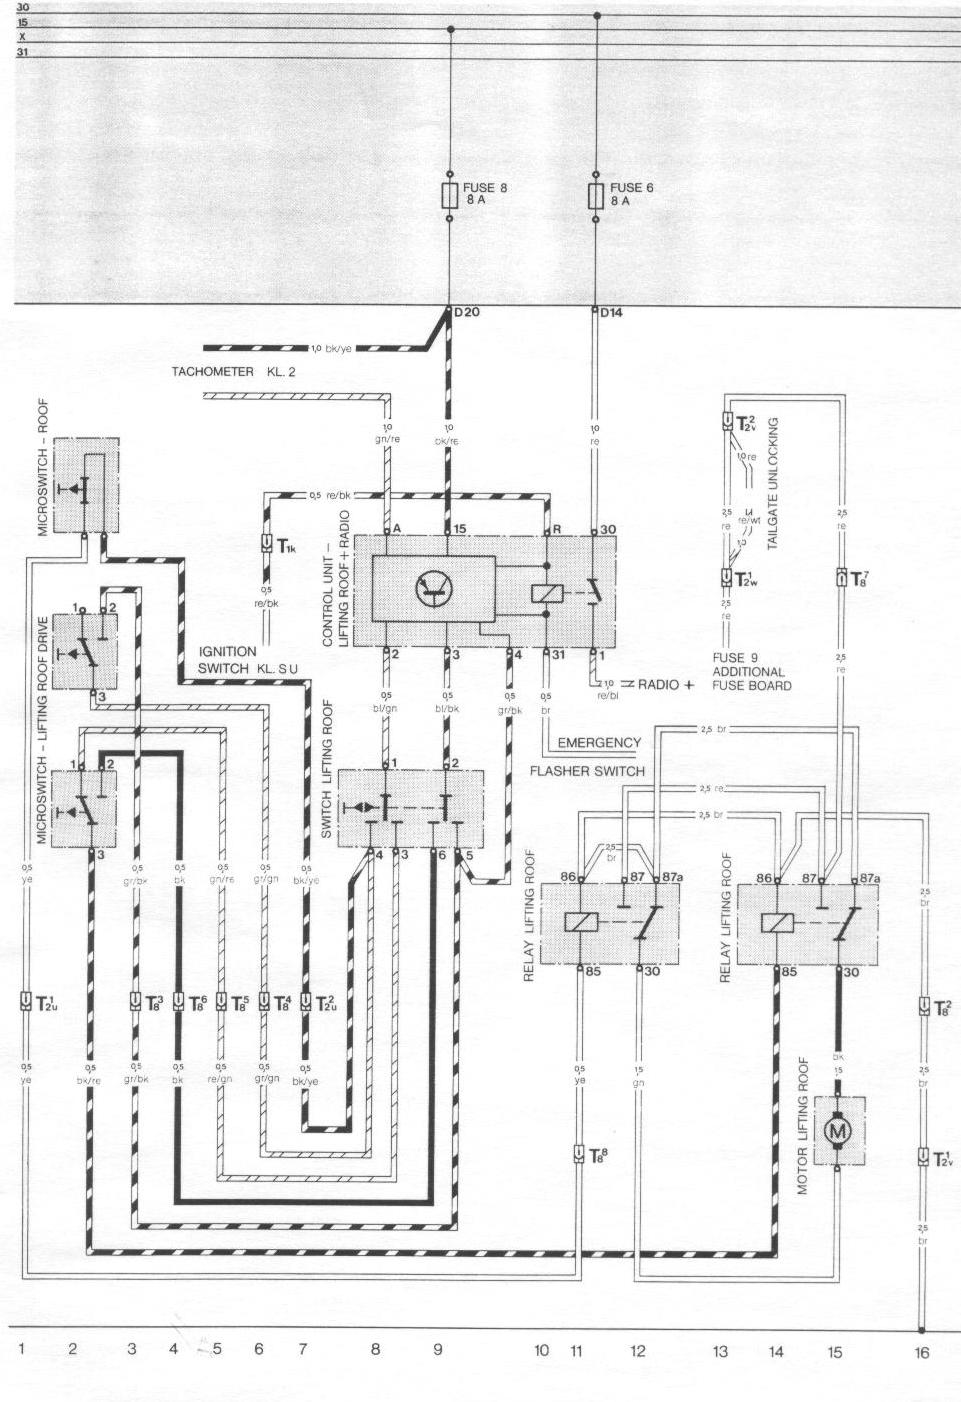 wiring diagram for porsche 944 diagram schematic ideas Replace Porsche 944 Fuse Box